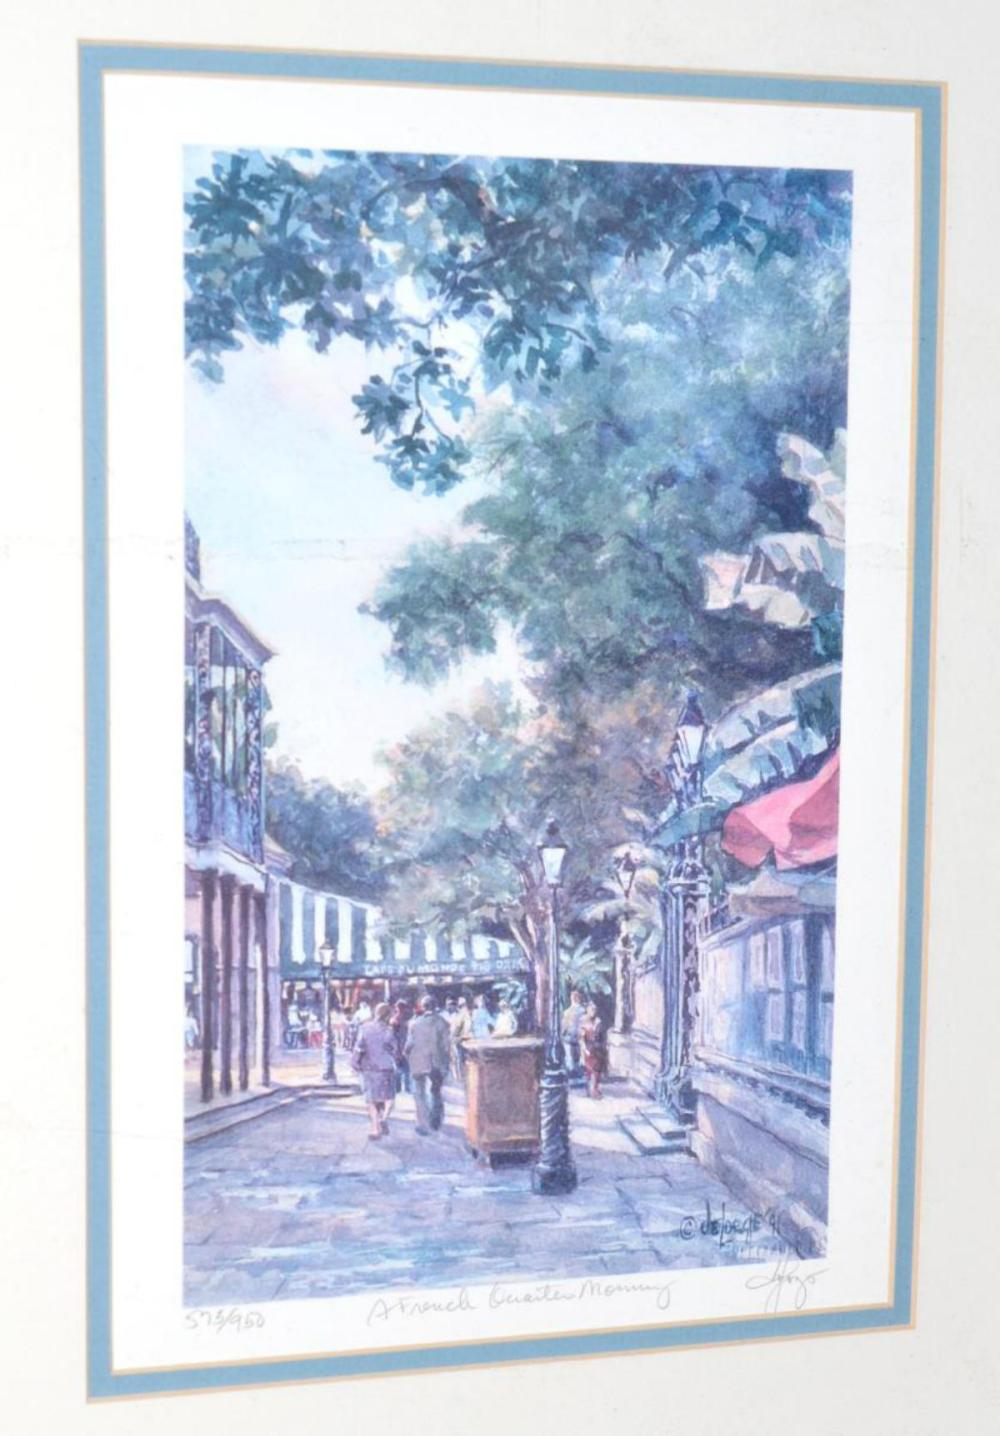 Lot 80: Ann DeLorge Signed Triptych French Quarter Morning